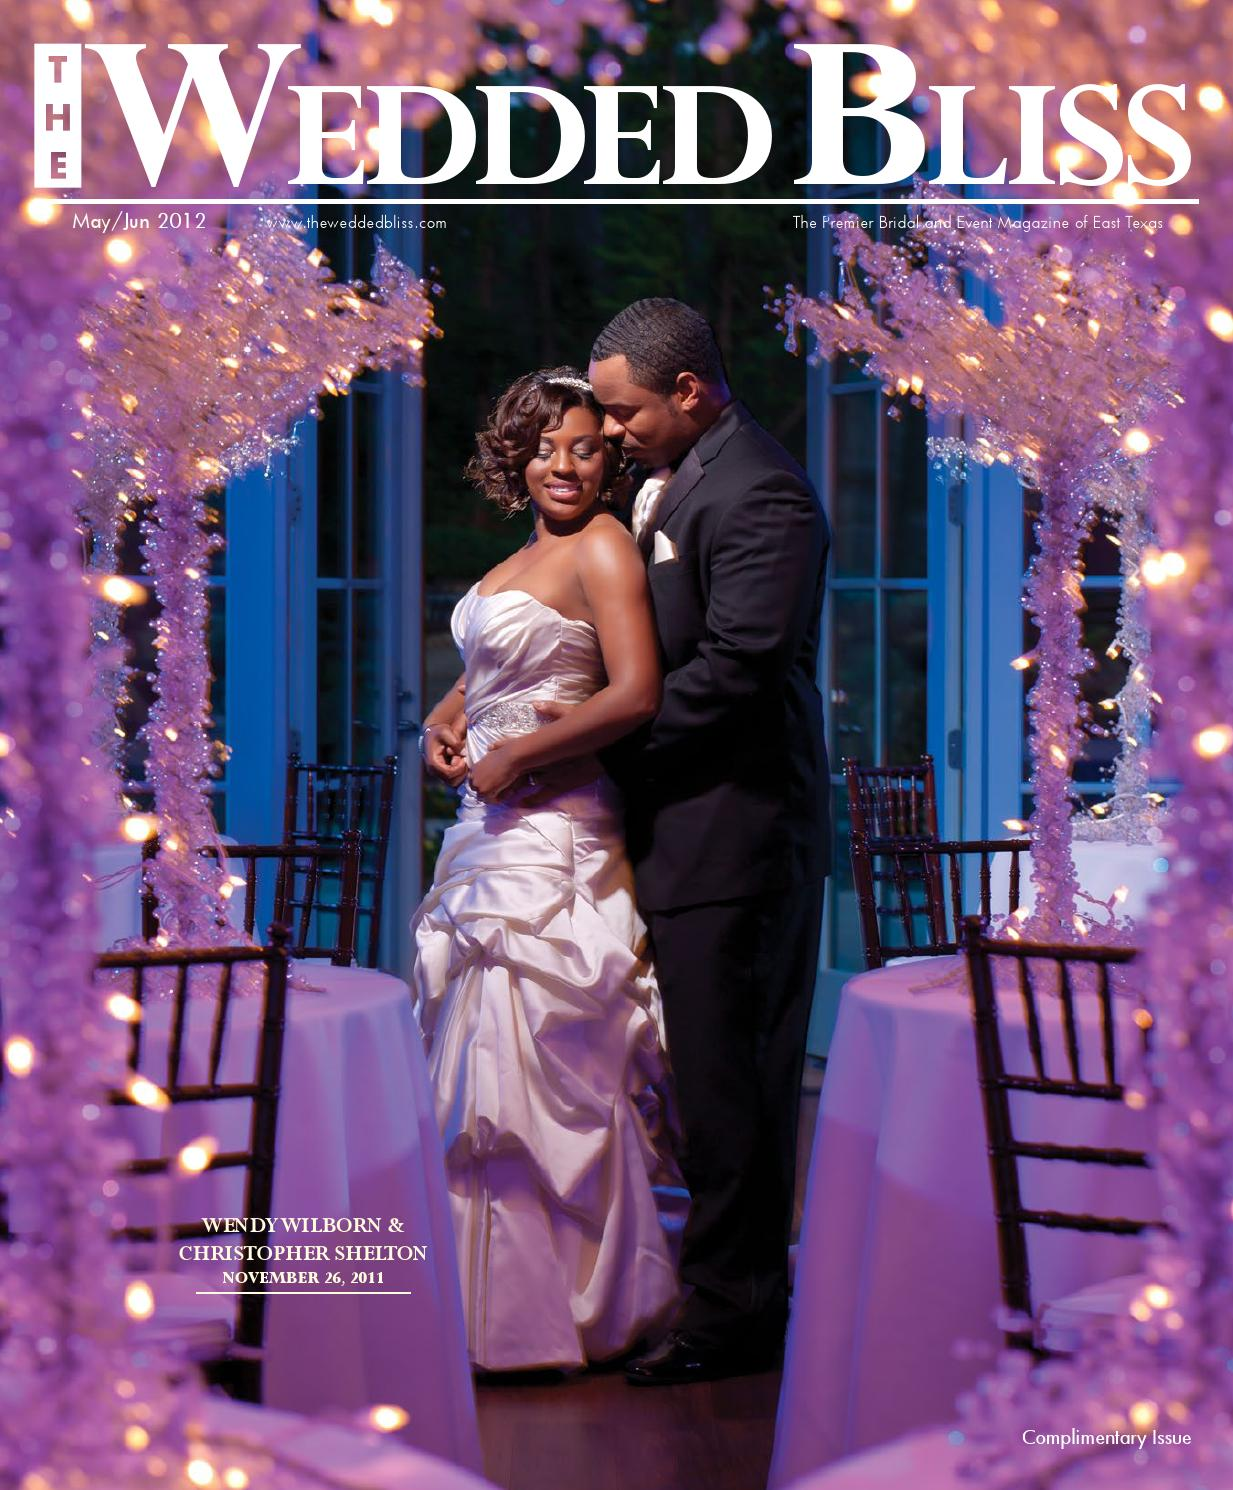 Wedded: May-June 2012 By The Wedded Bliss